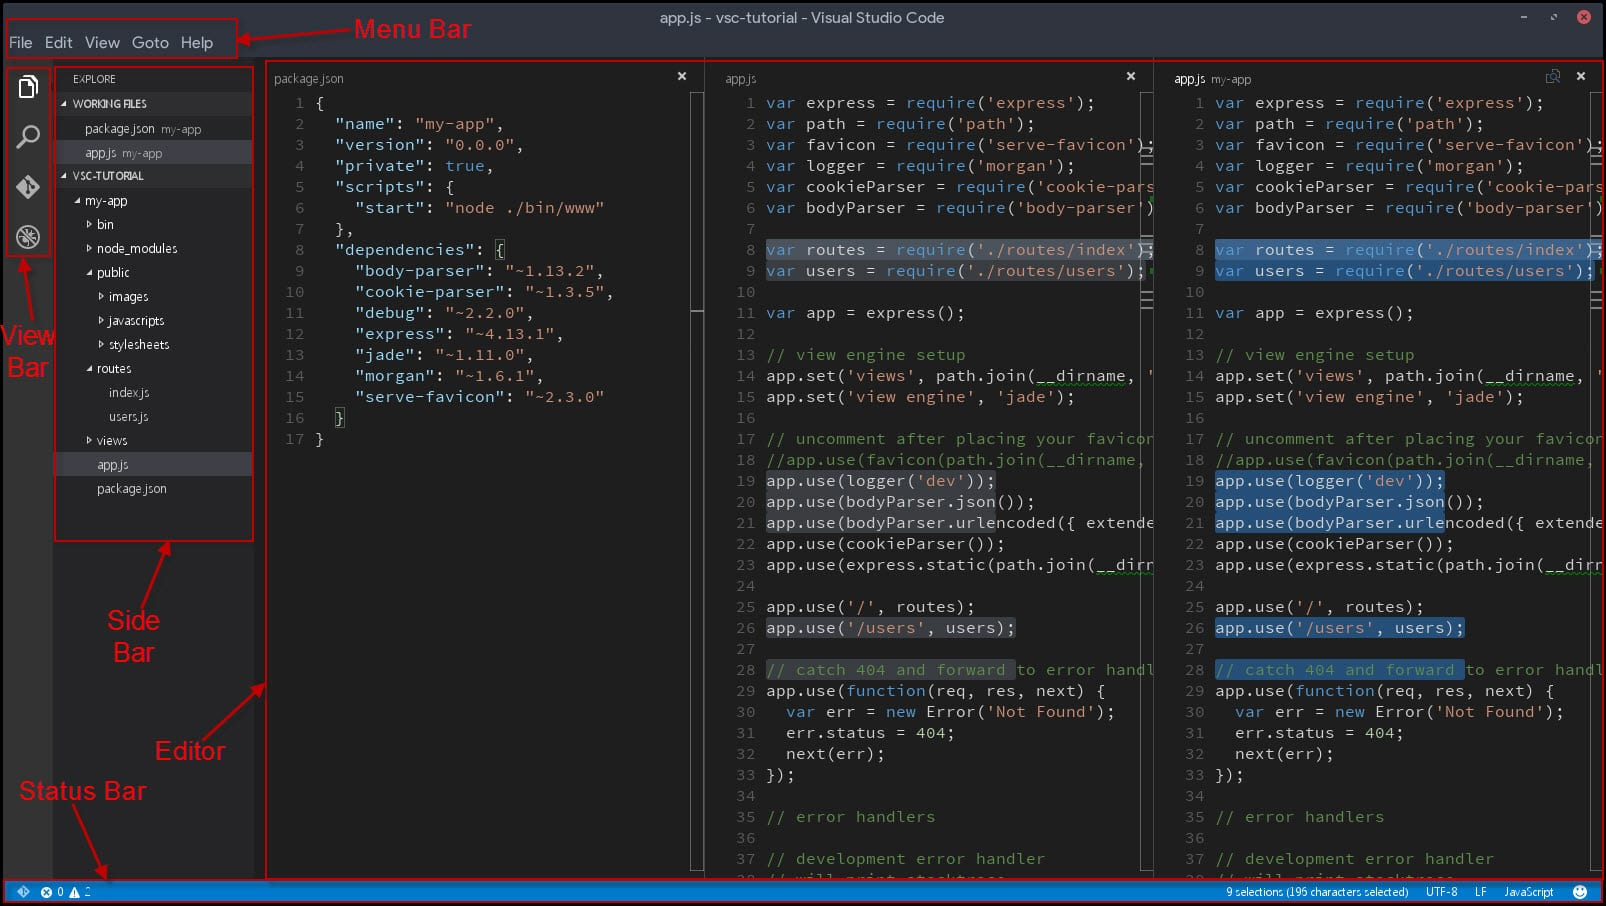 1-user interface of Visual Studio Code